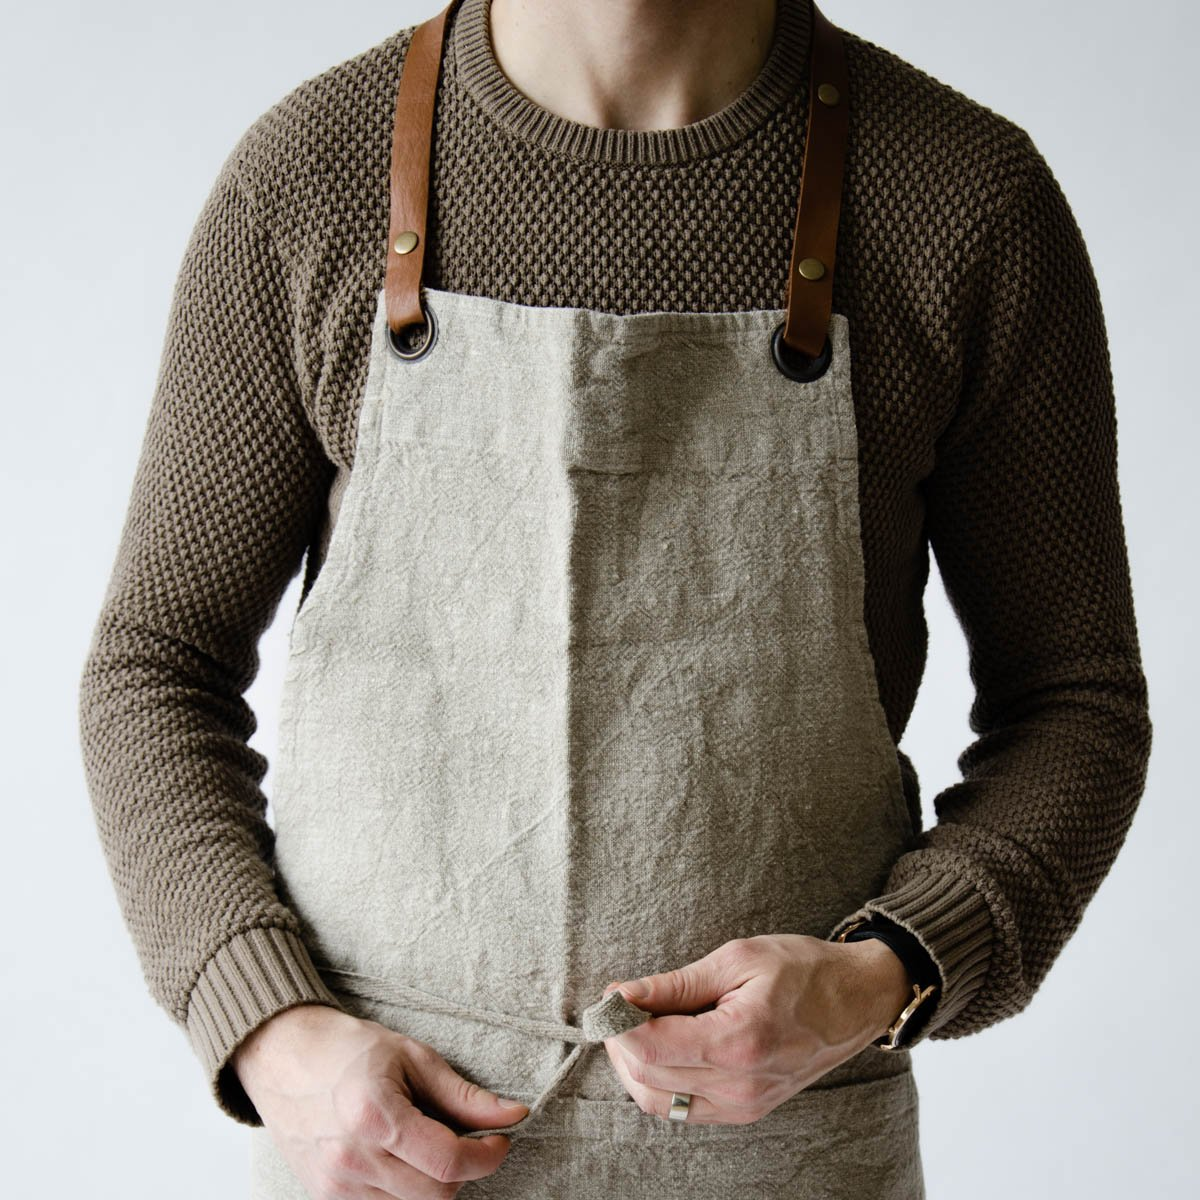 Linen Apron | $65 - JUNE Home Supply